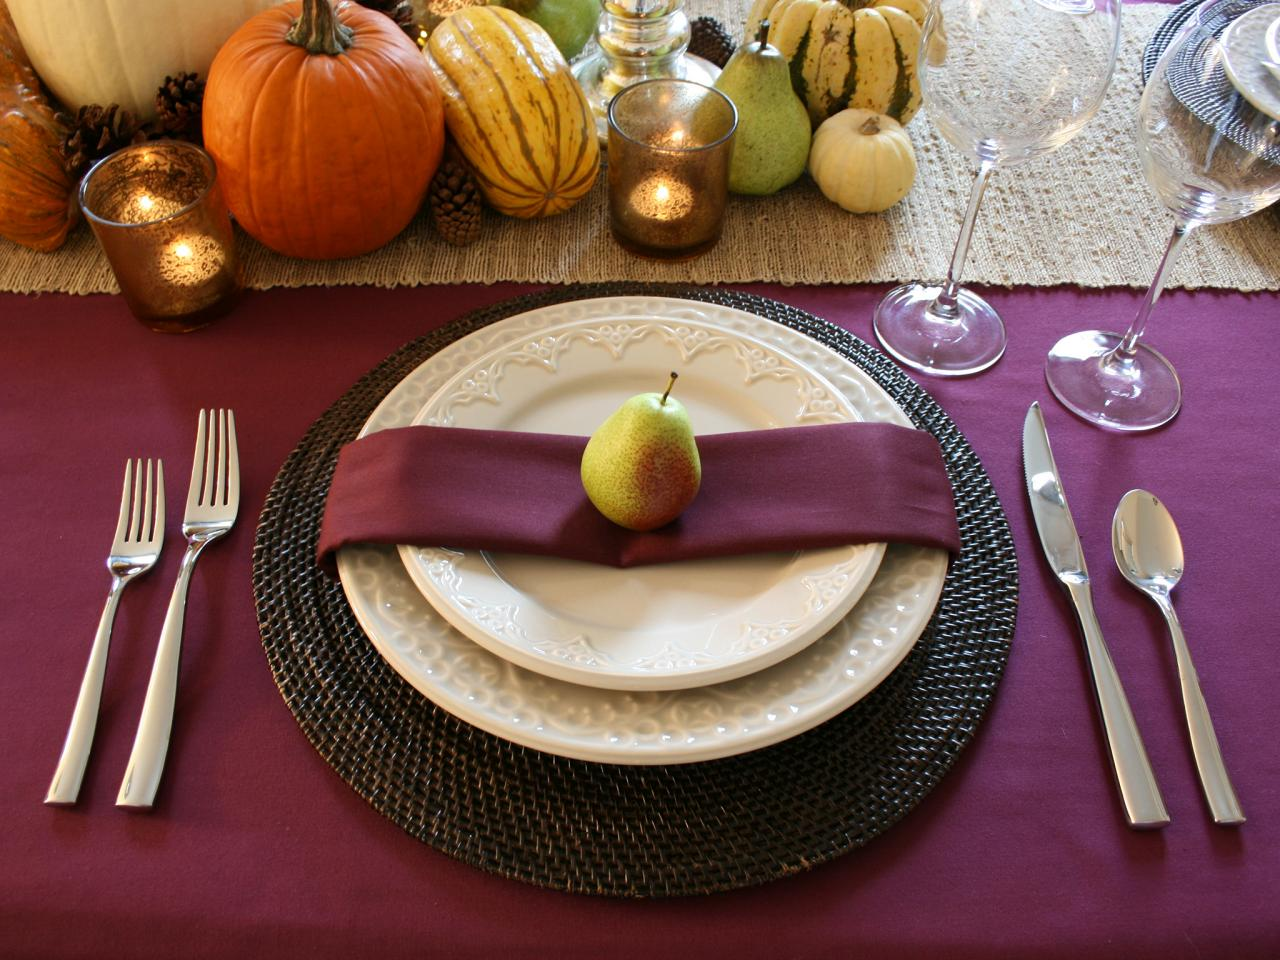 Embassys 15 Stylish Thanksgiving Table Settings